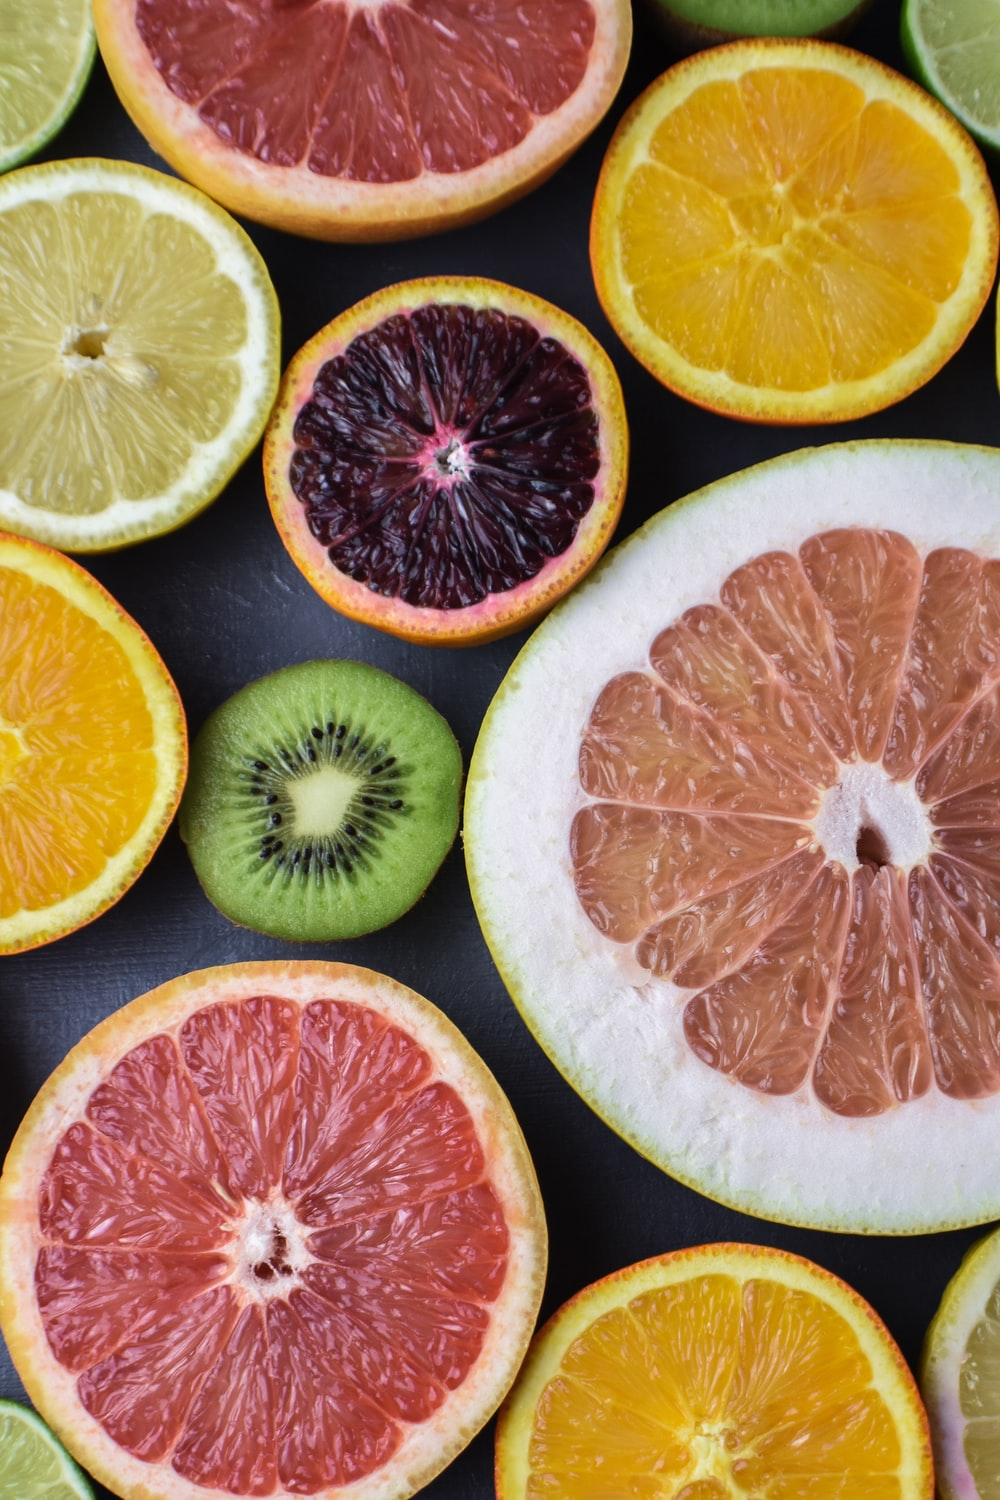 variety of sliced fruits